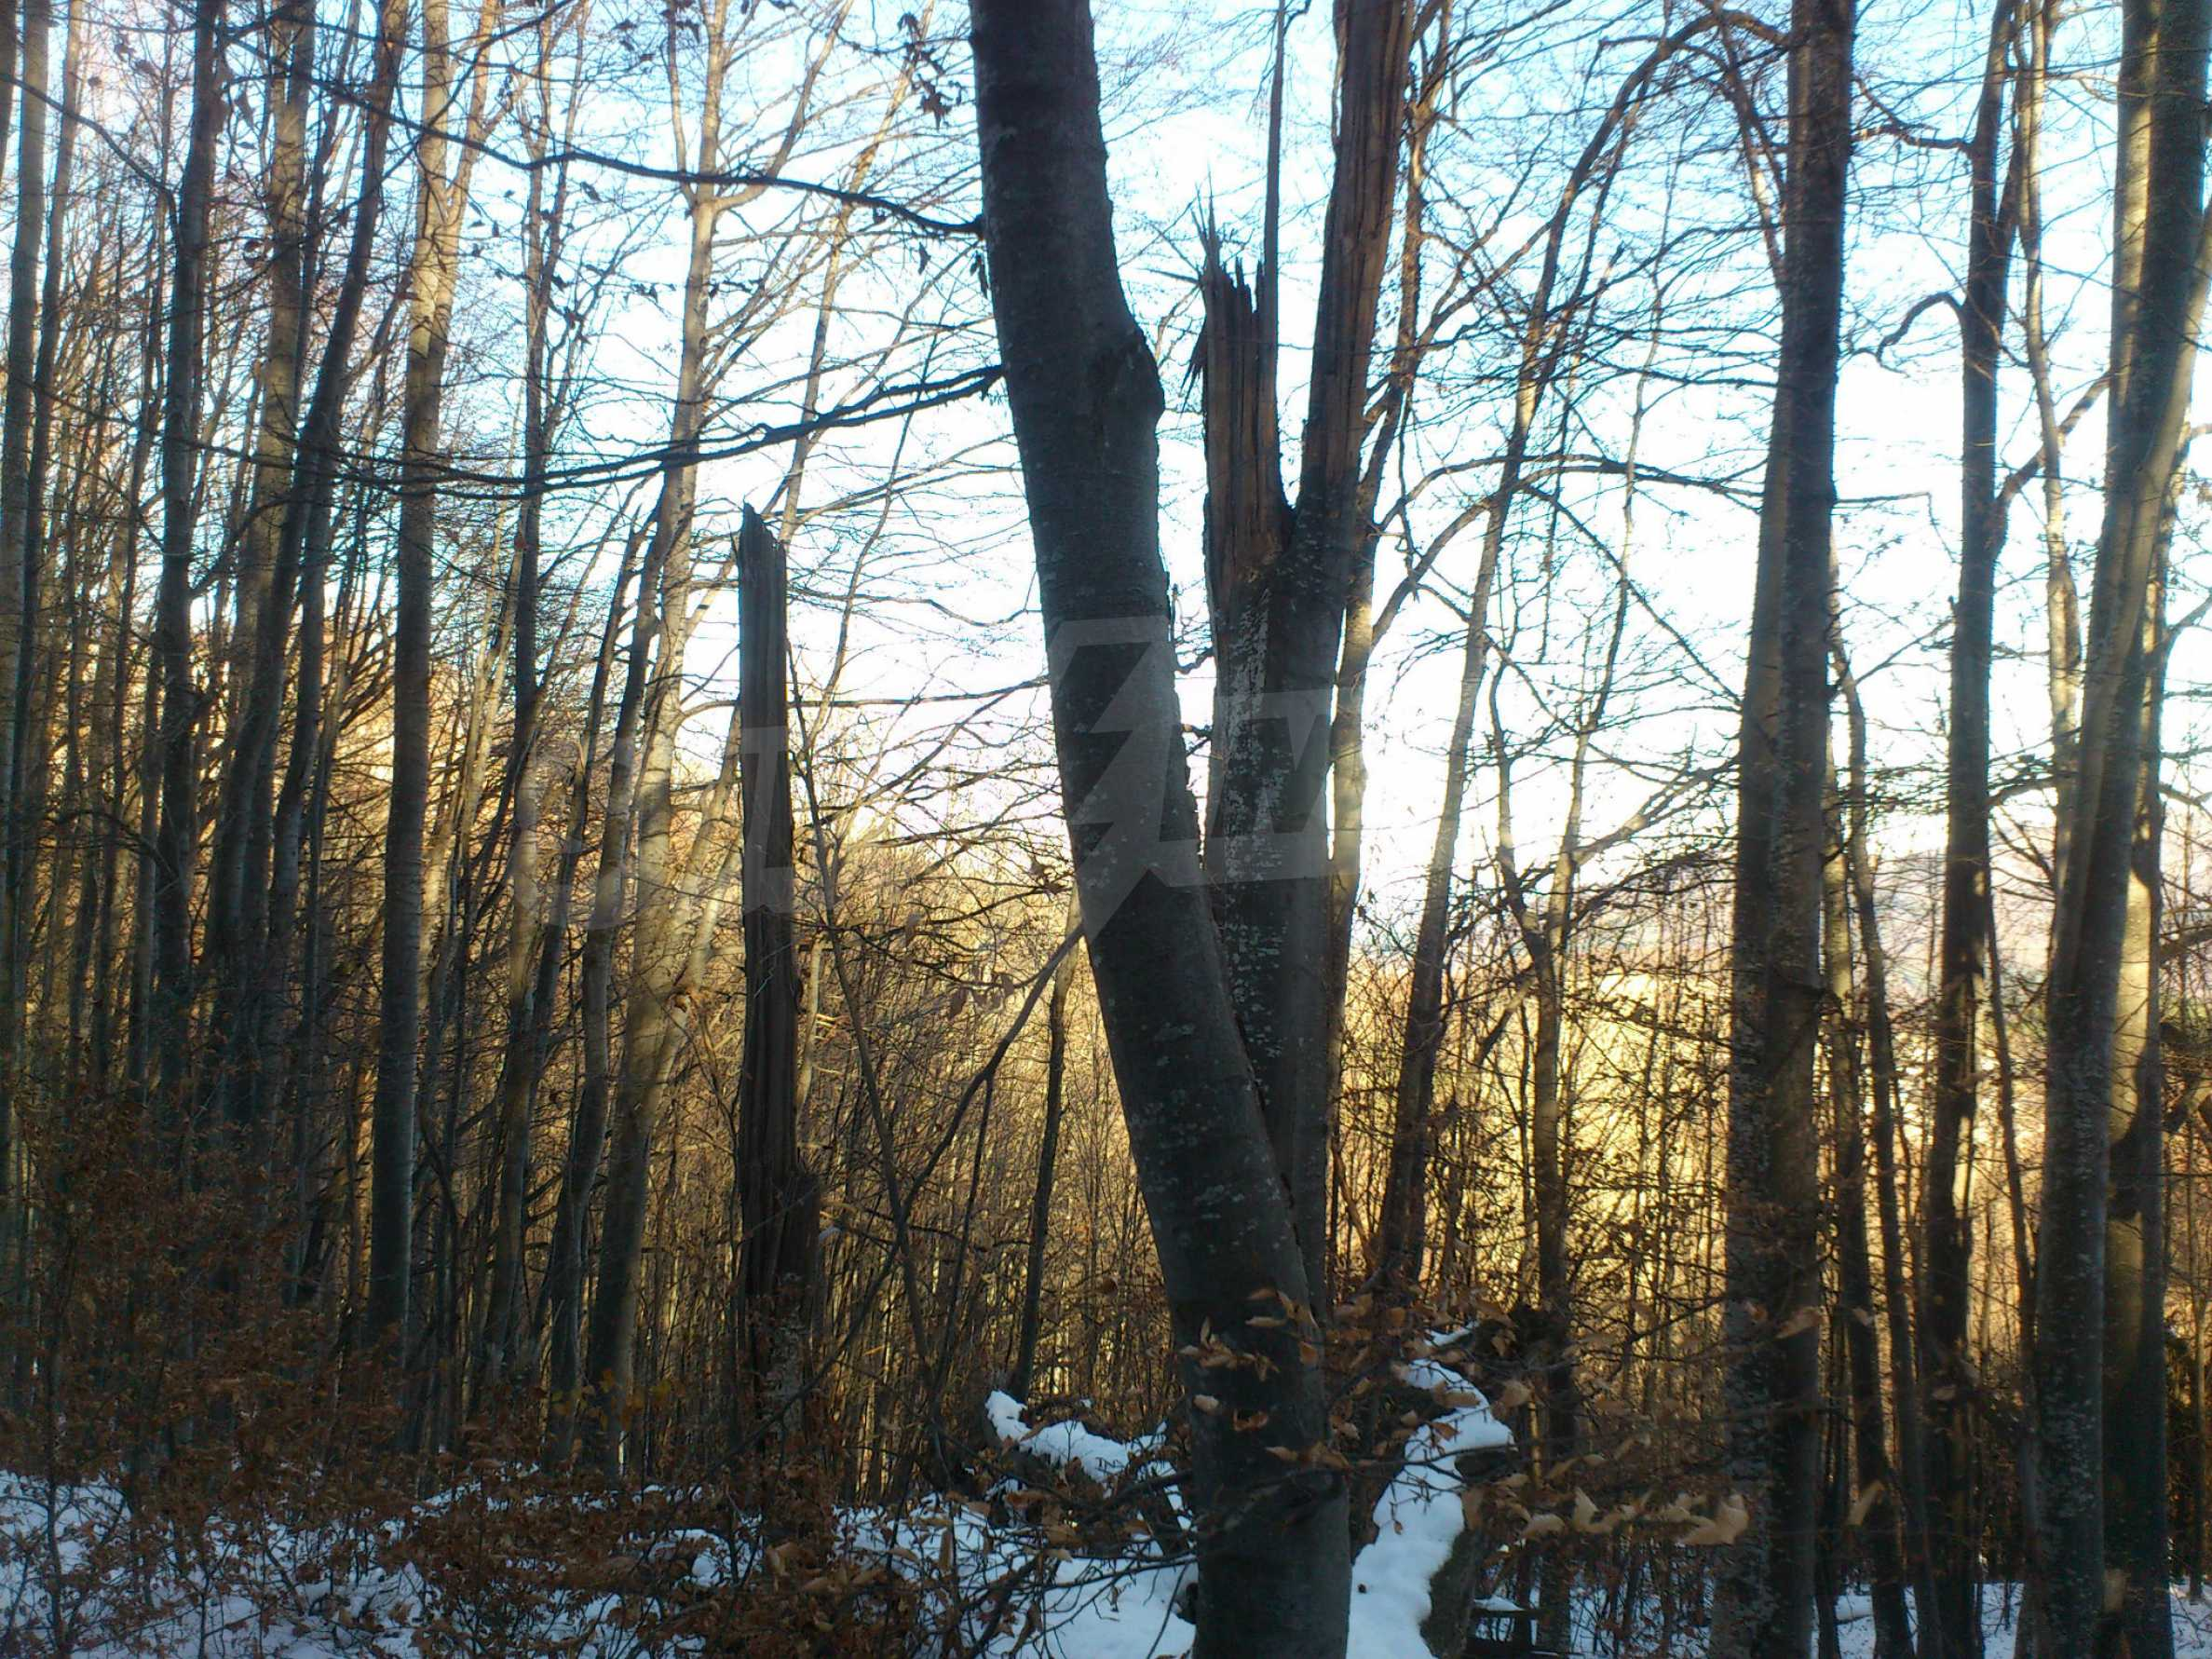 Deciduous forest near Aprilci 19